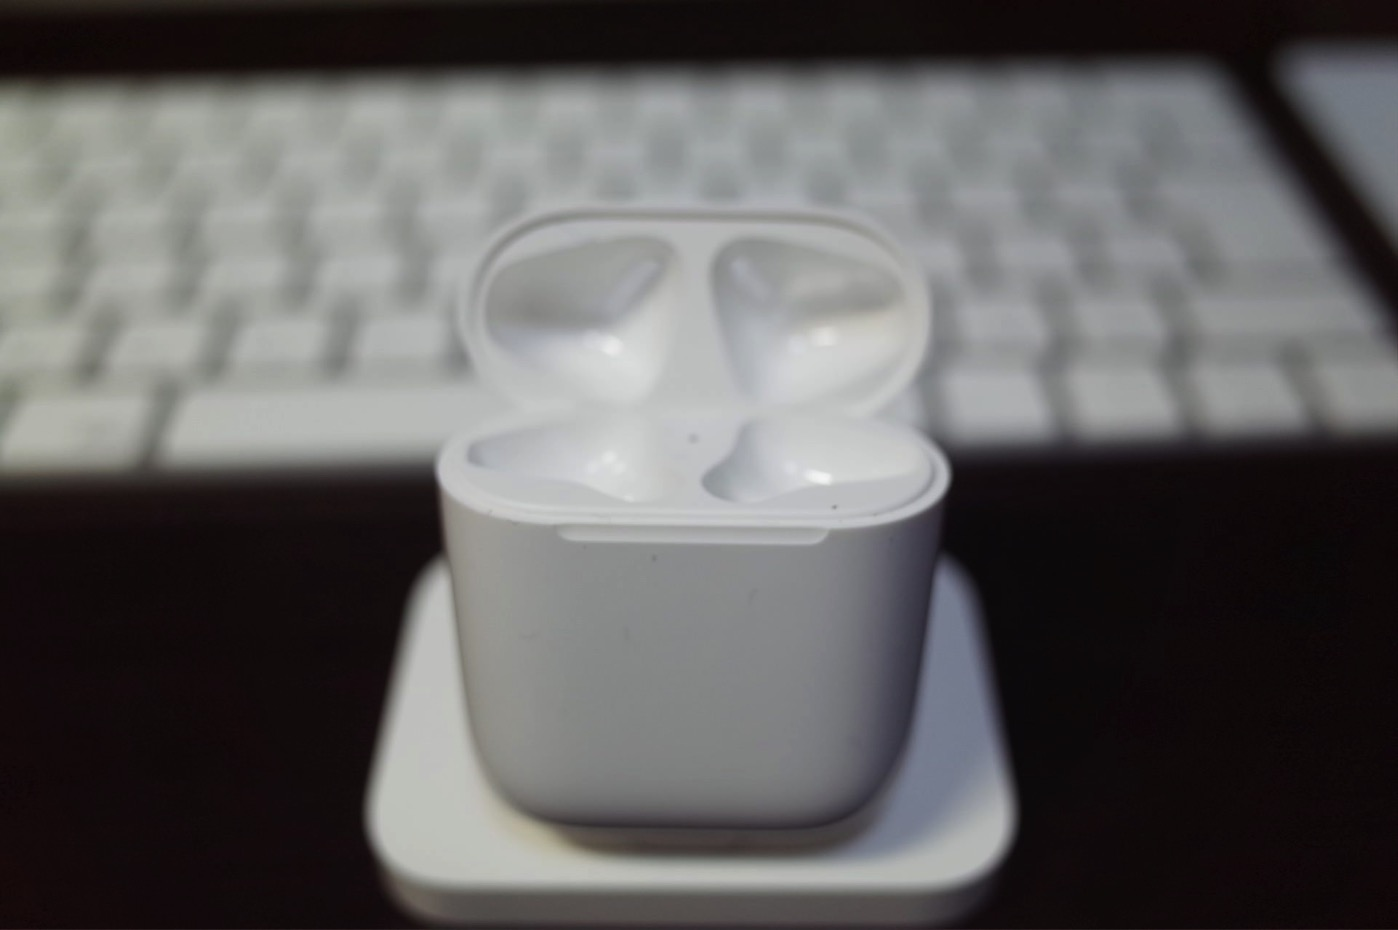 AirPods Case-6